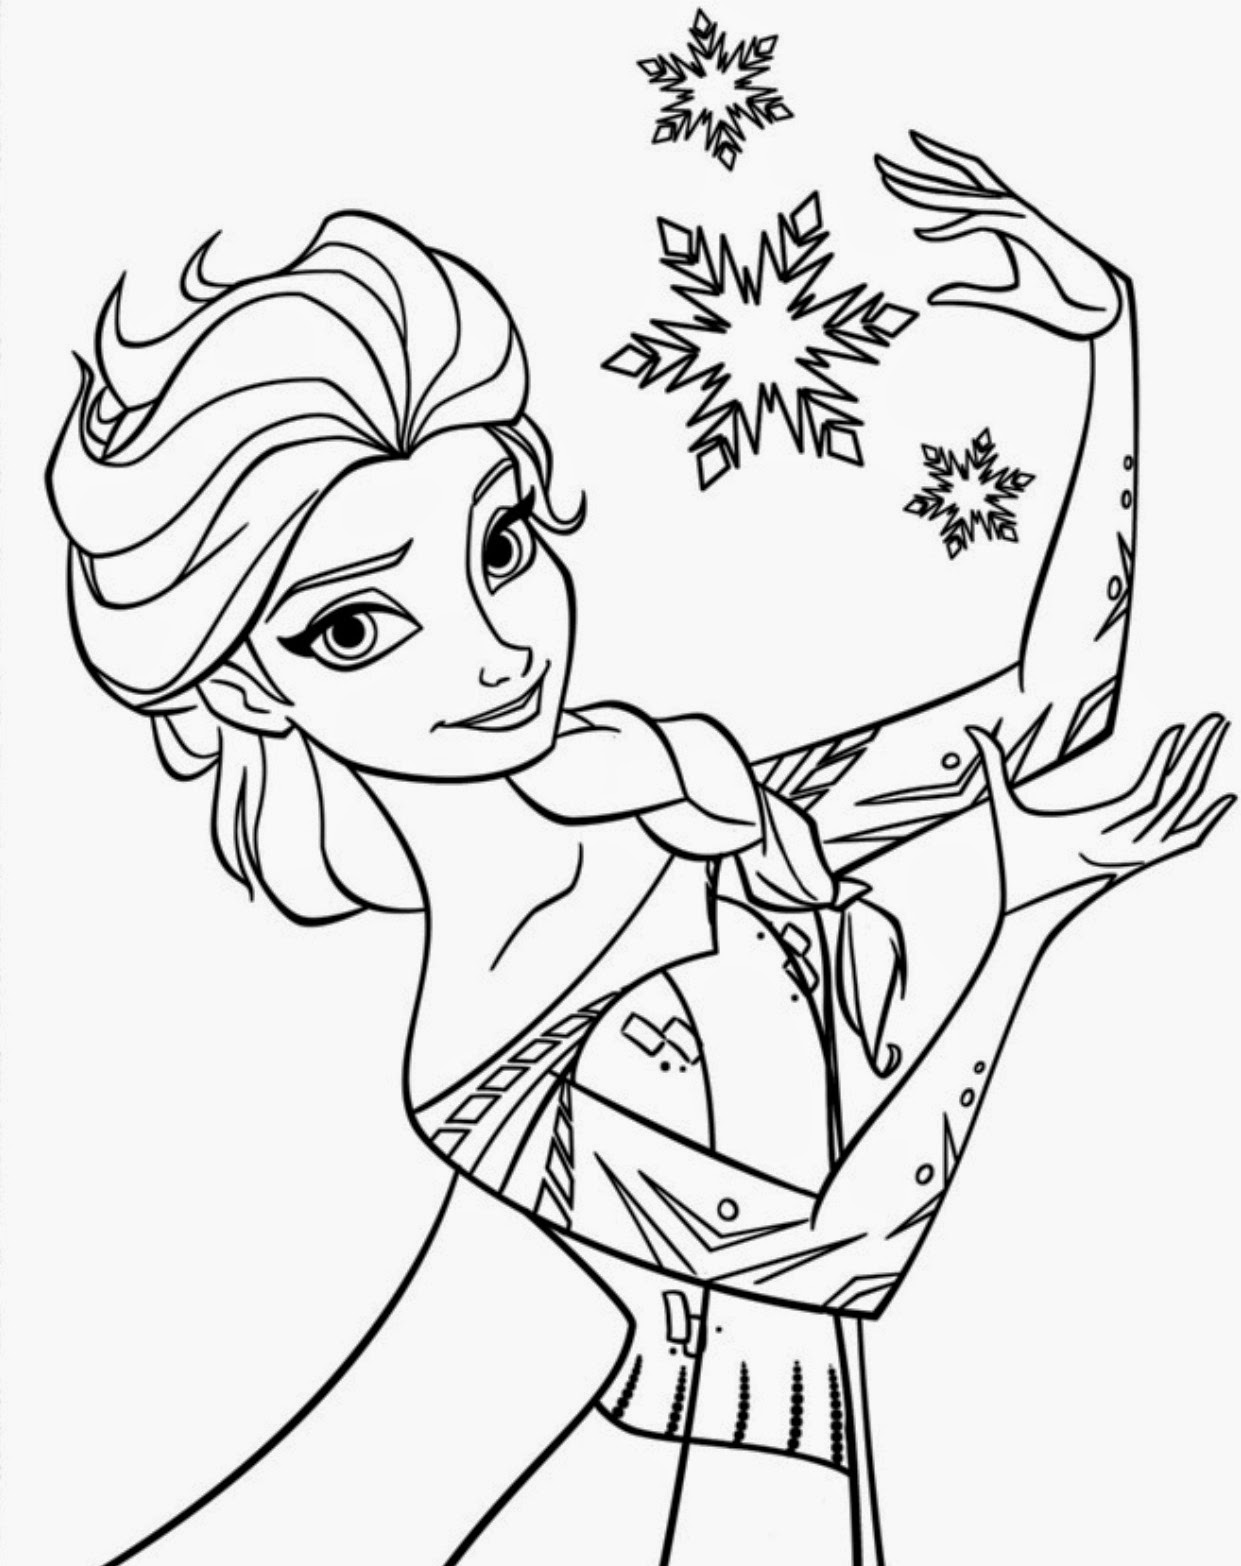 free printable frozen coloring pages free printable frozen coloring pages for kids best free coloring pages printable frozen